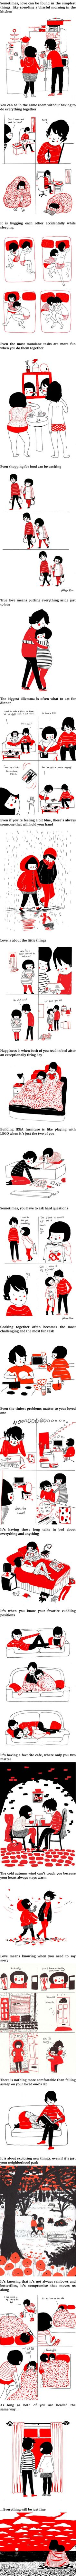 Heartwarming Illustrations Show That Love Is In The Small Things (Artwork by Philippa Rice)